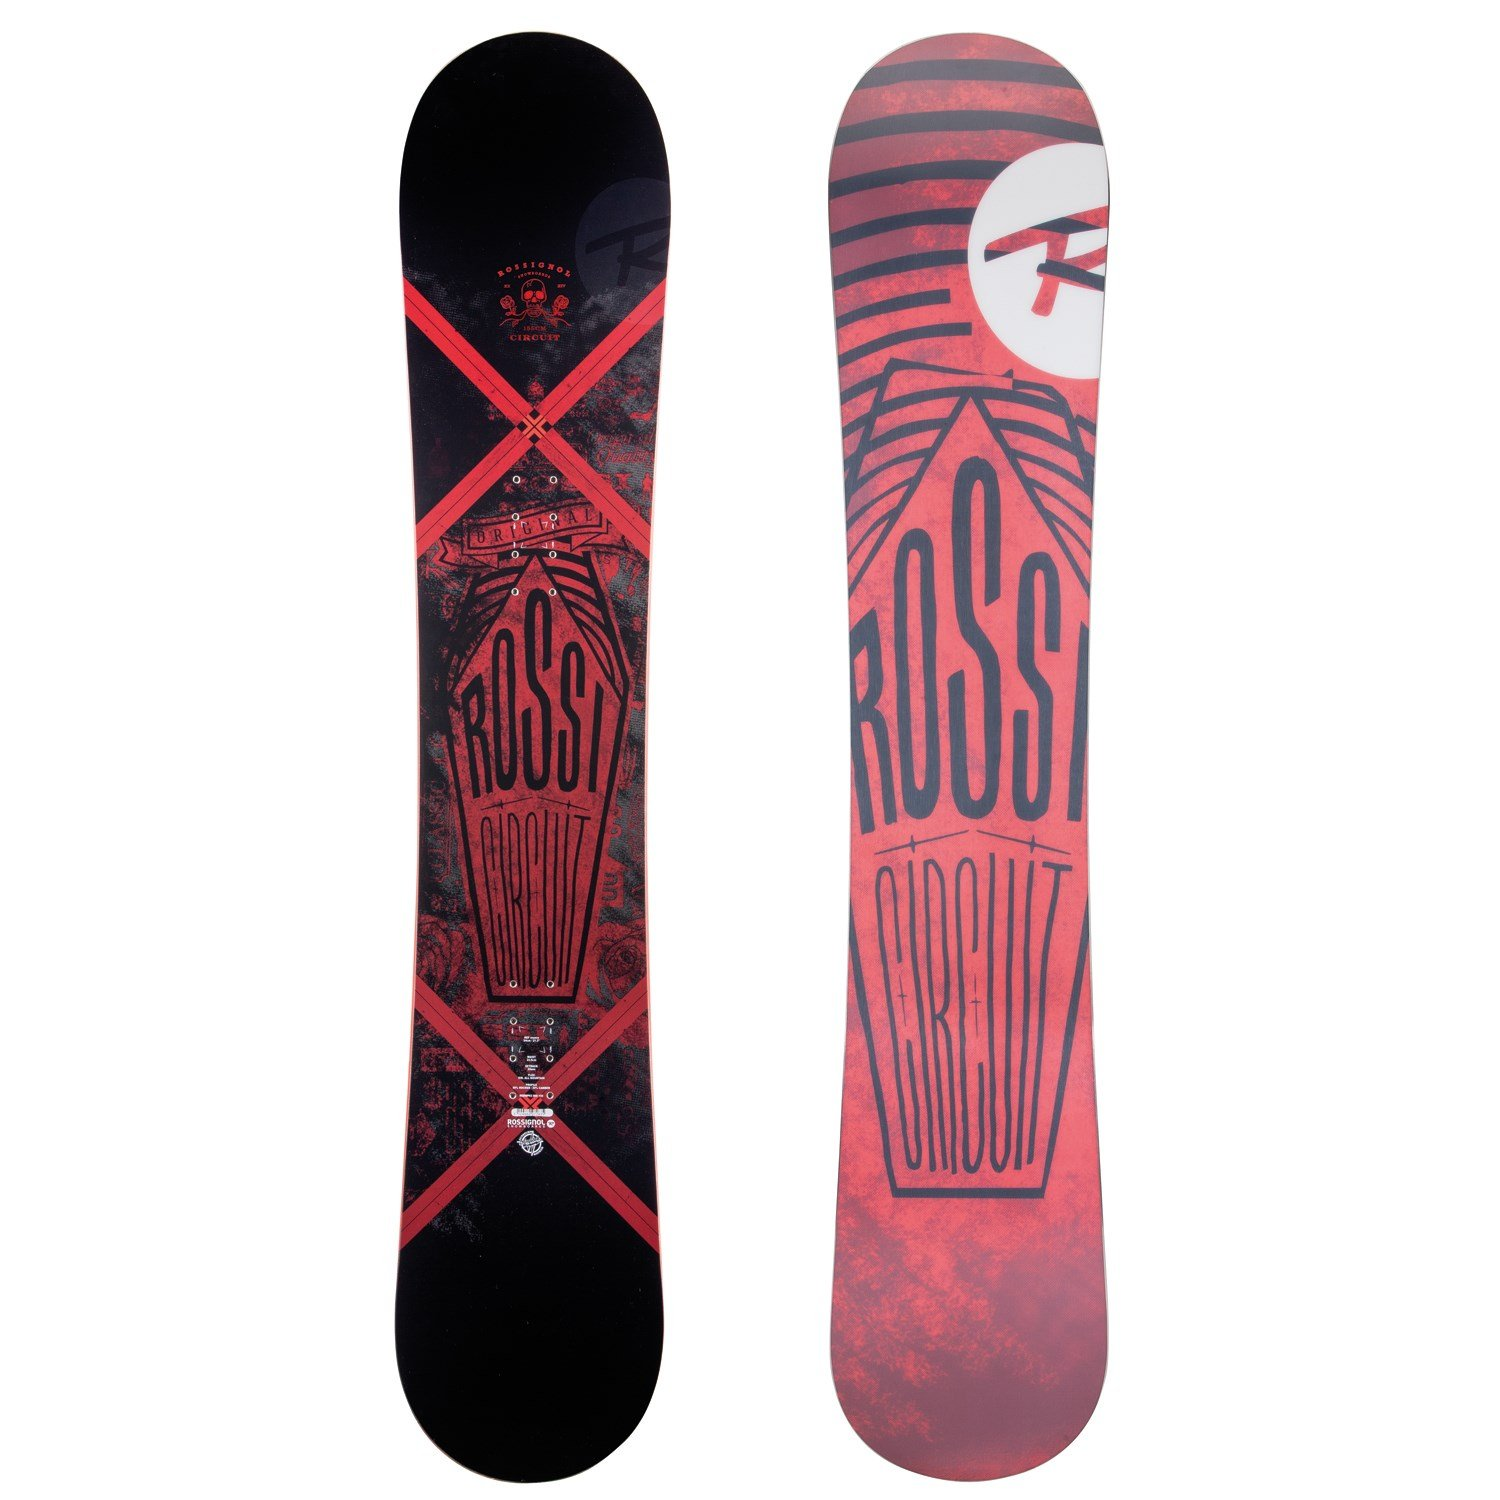 Rossignol Circuit Snowboard besides Switch Mode Power Supply Circuit further Fire Emergency Evacuation Plan furthermore AC Soft Start Circuit additionally M Inverter Circuit Diagram. on soft start circuit